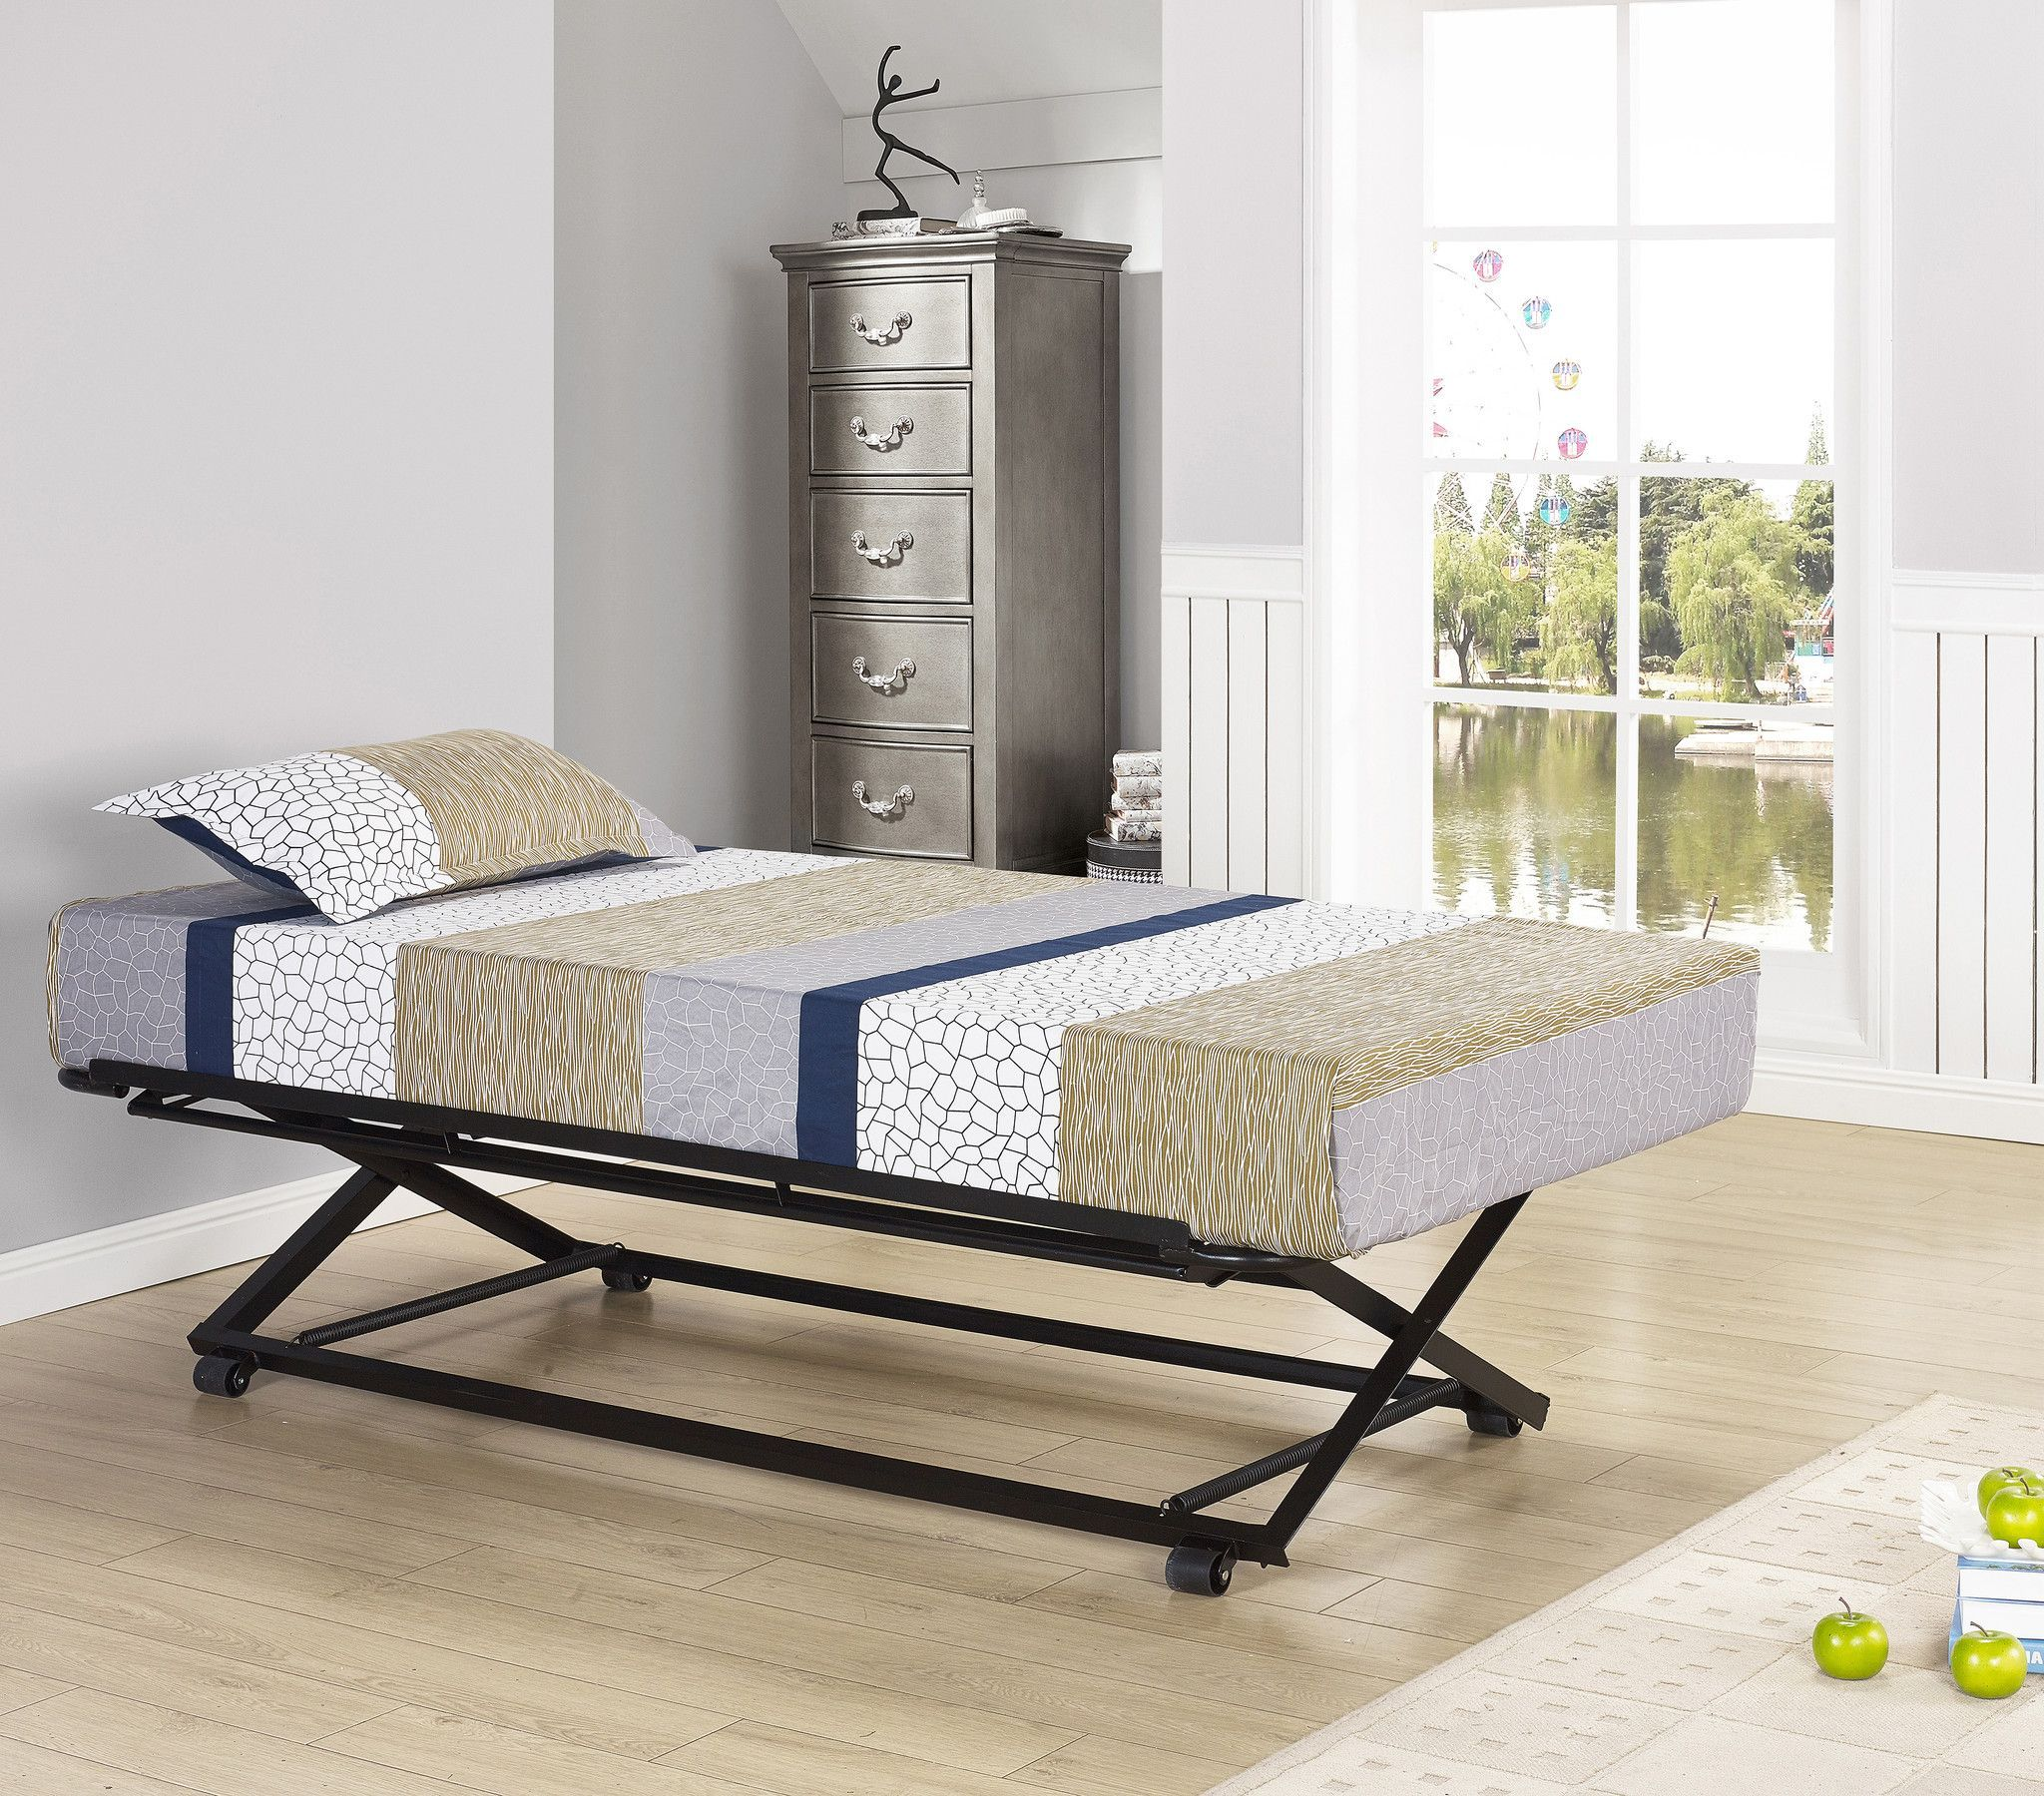 39 Twin Size Black Or White Metal Day Bed Frame